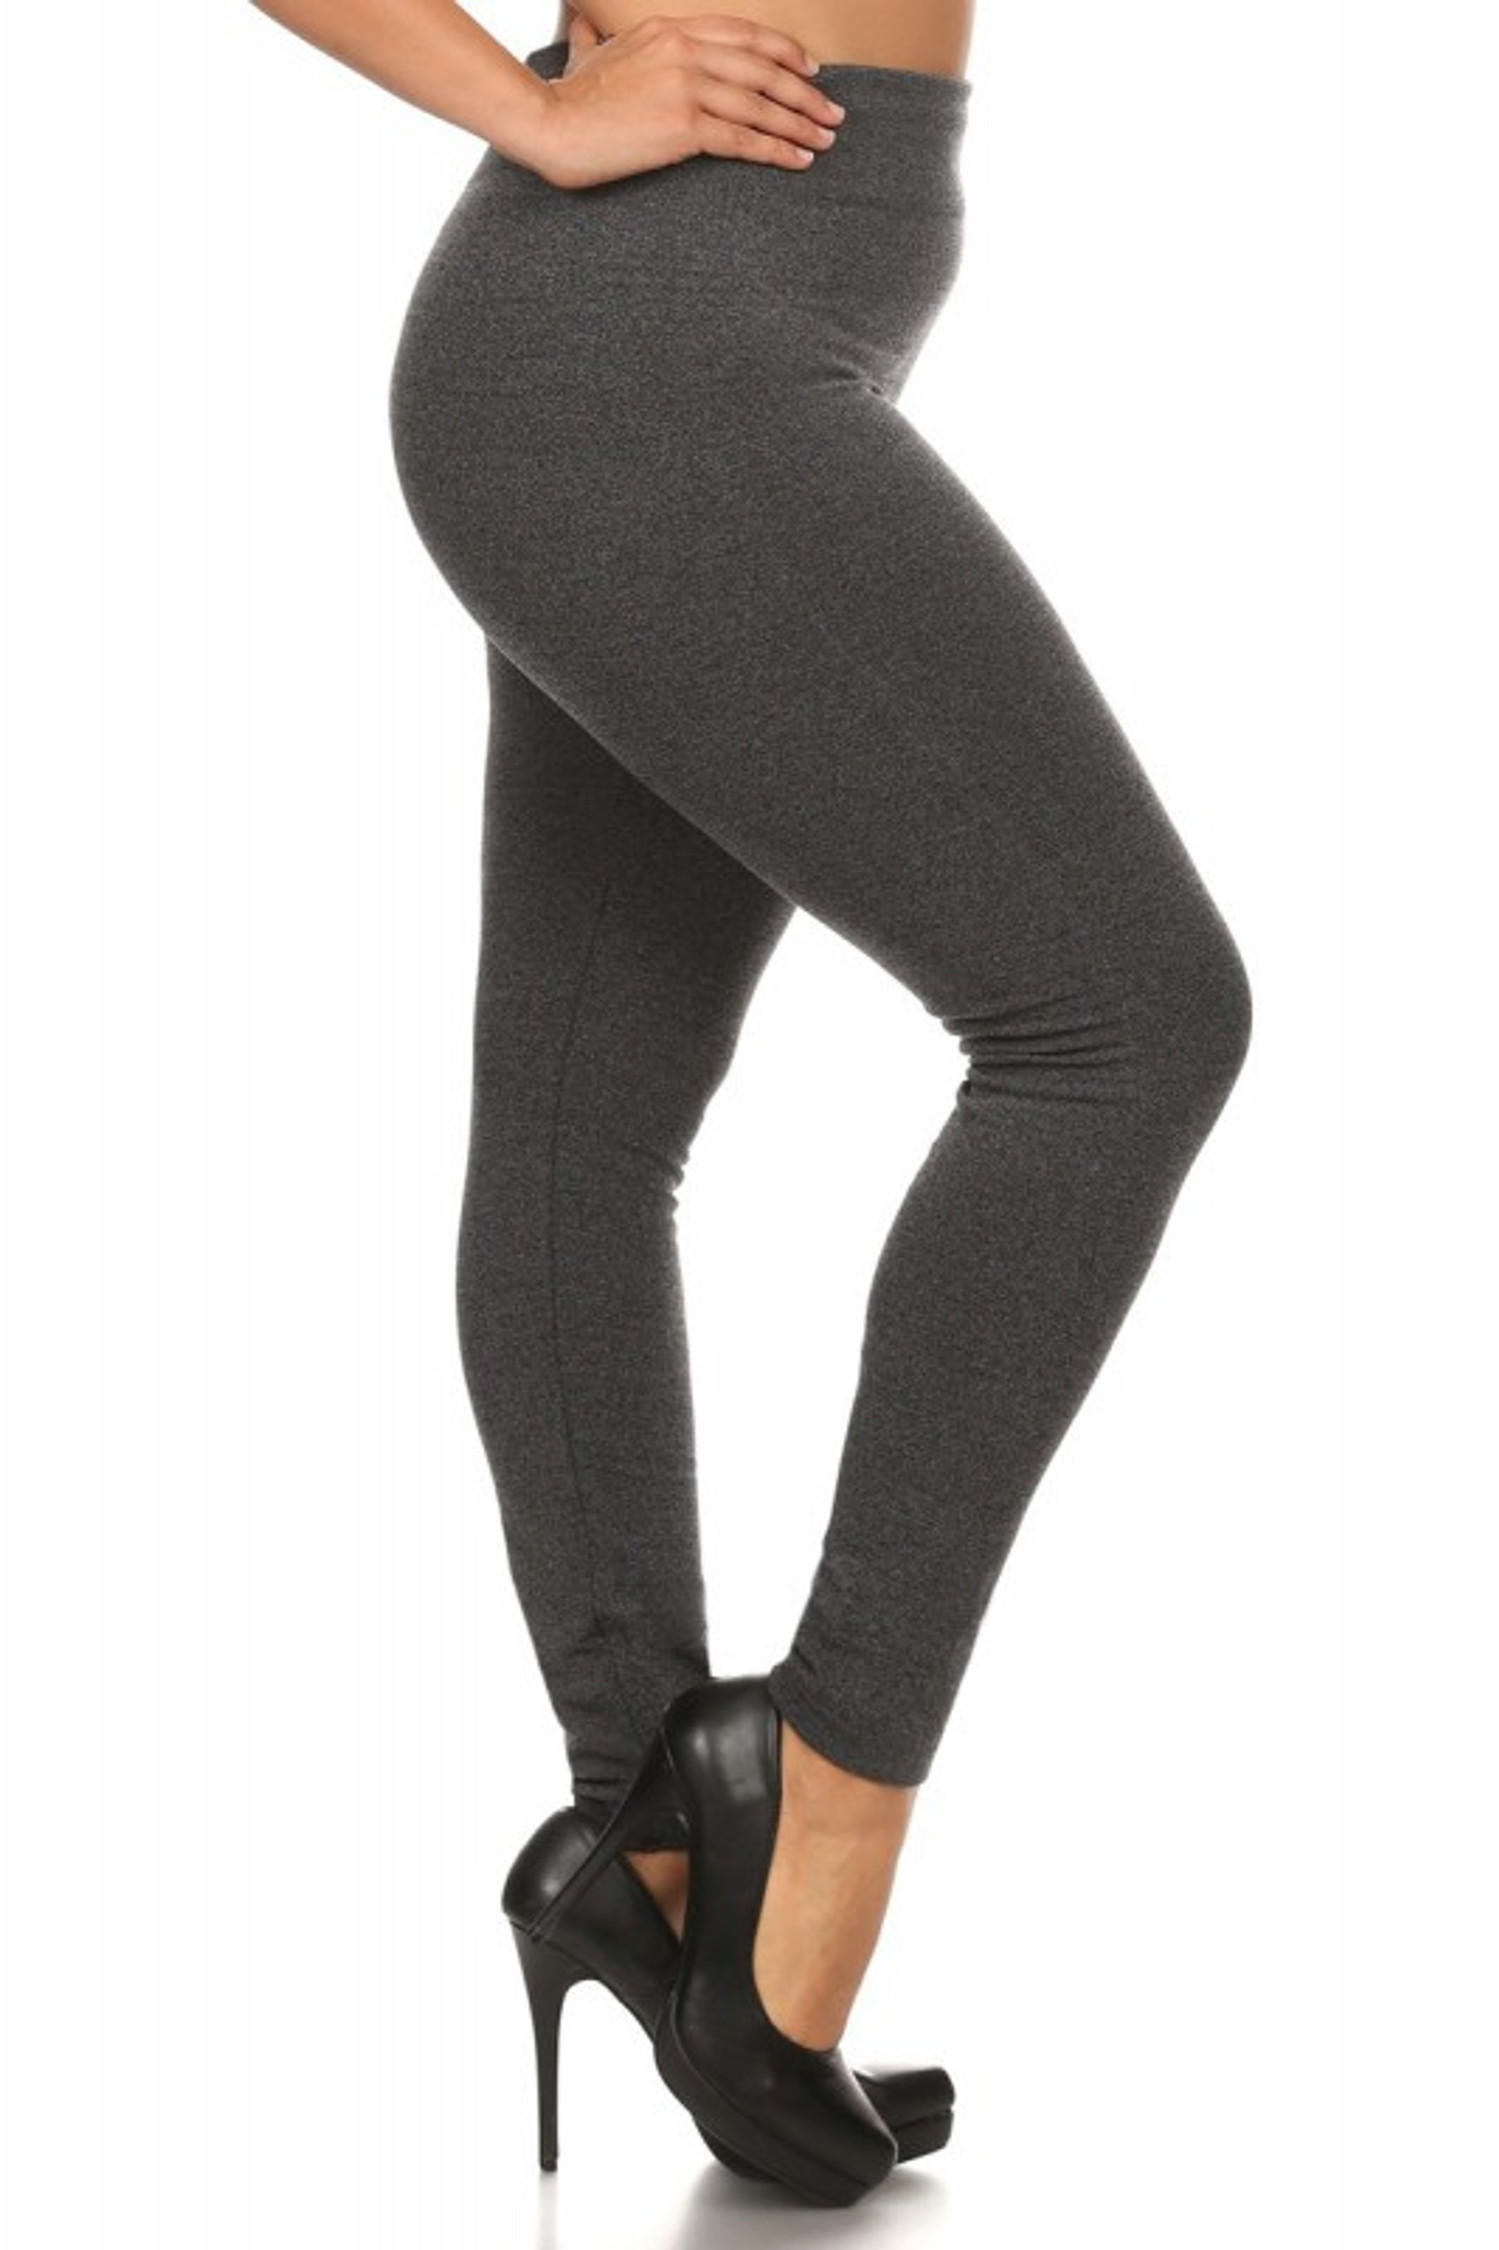 Side Image of Premium Women's Fleece Lined Plus Size Leggings